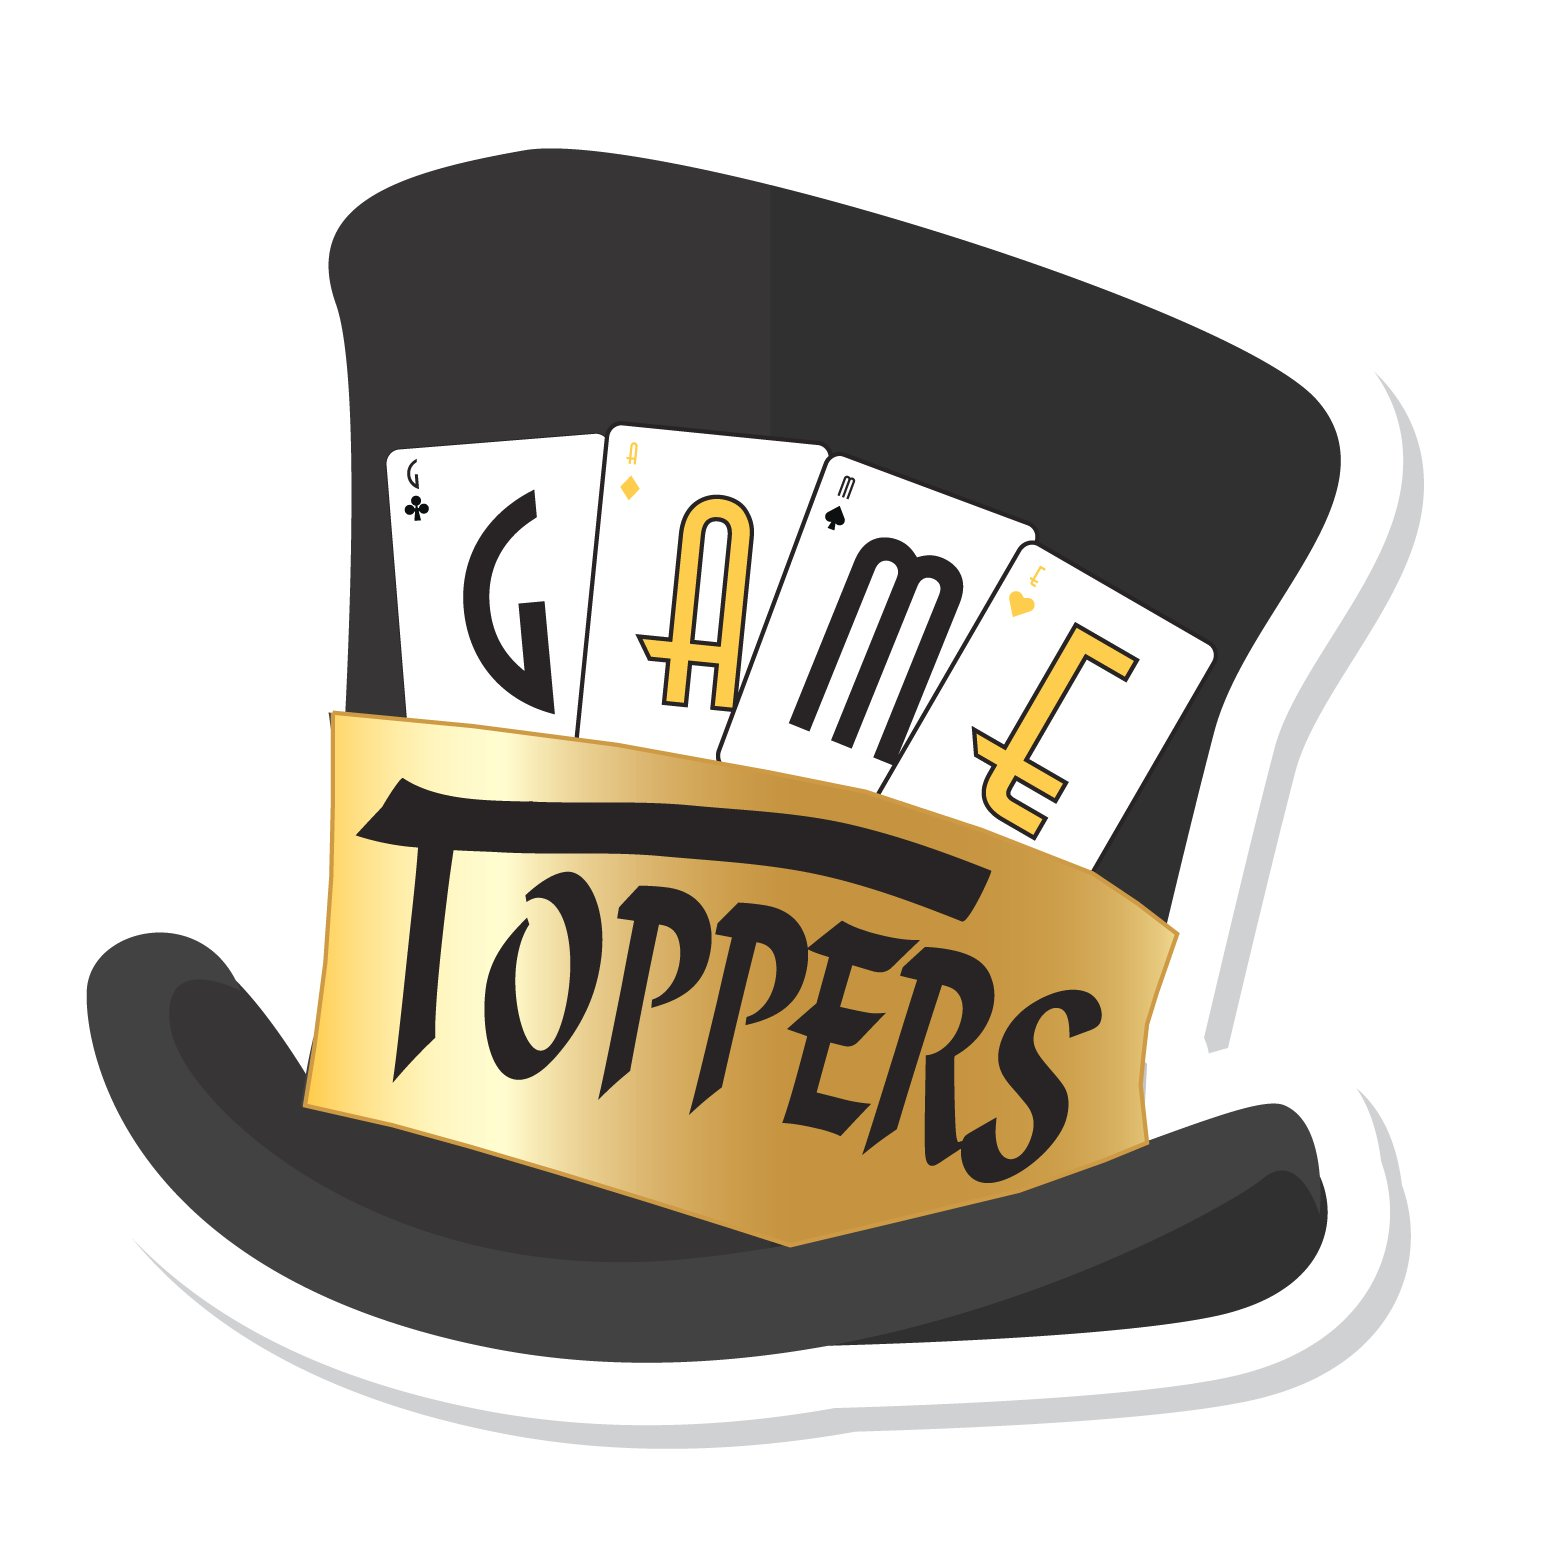 logo - game toppers.jpg